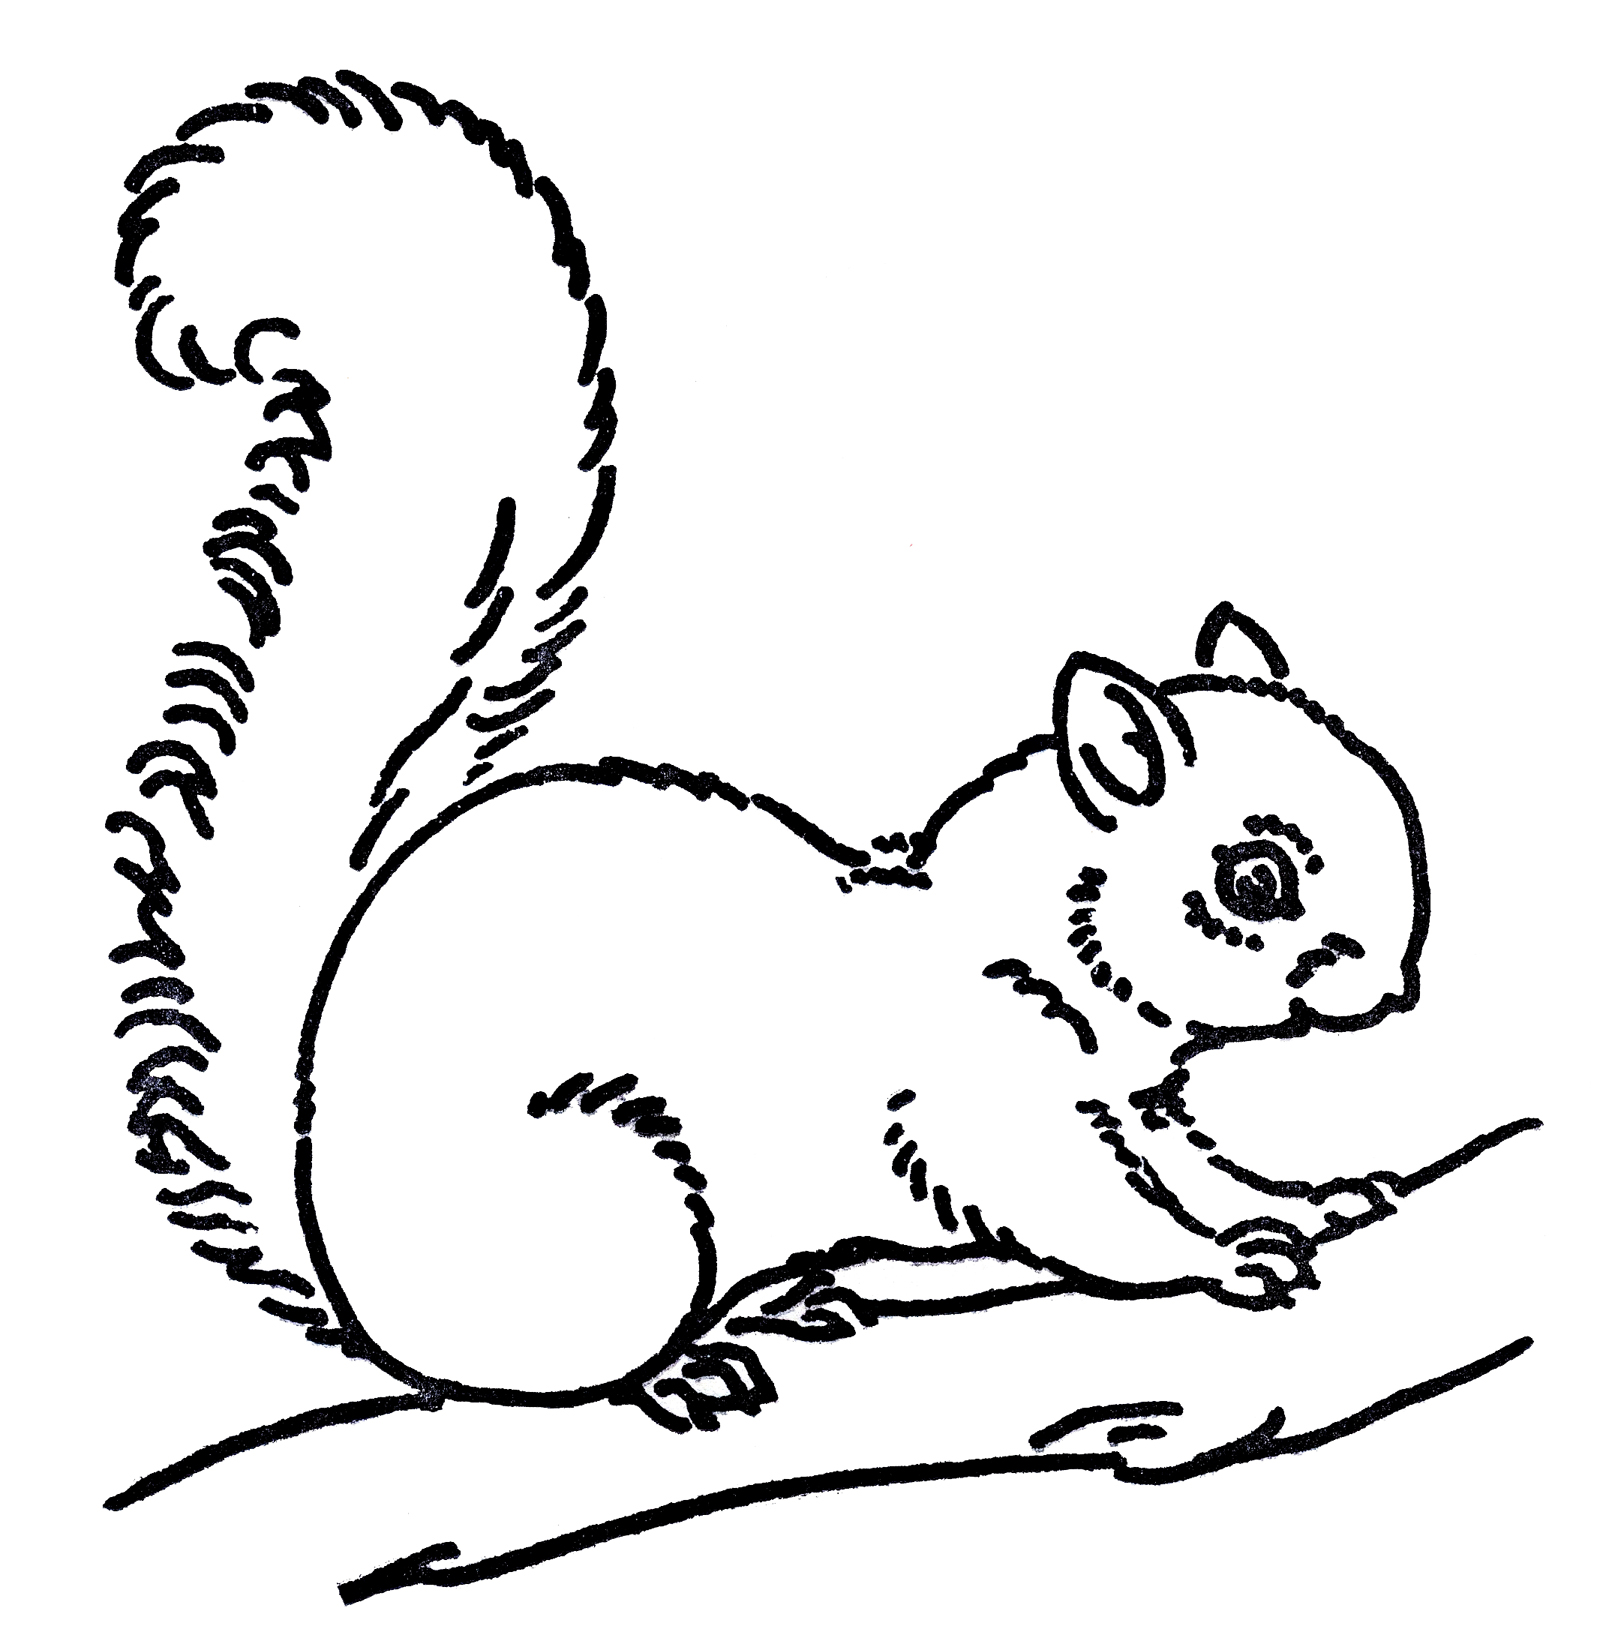 Drawn rodent rodent Squirrel Line Images Art Squirrel